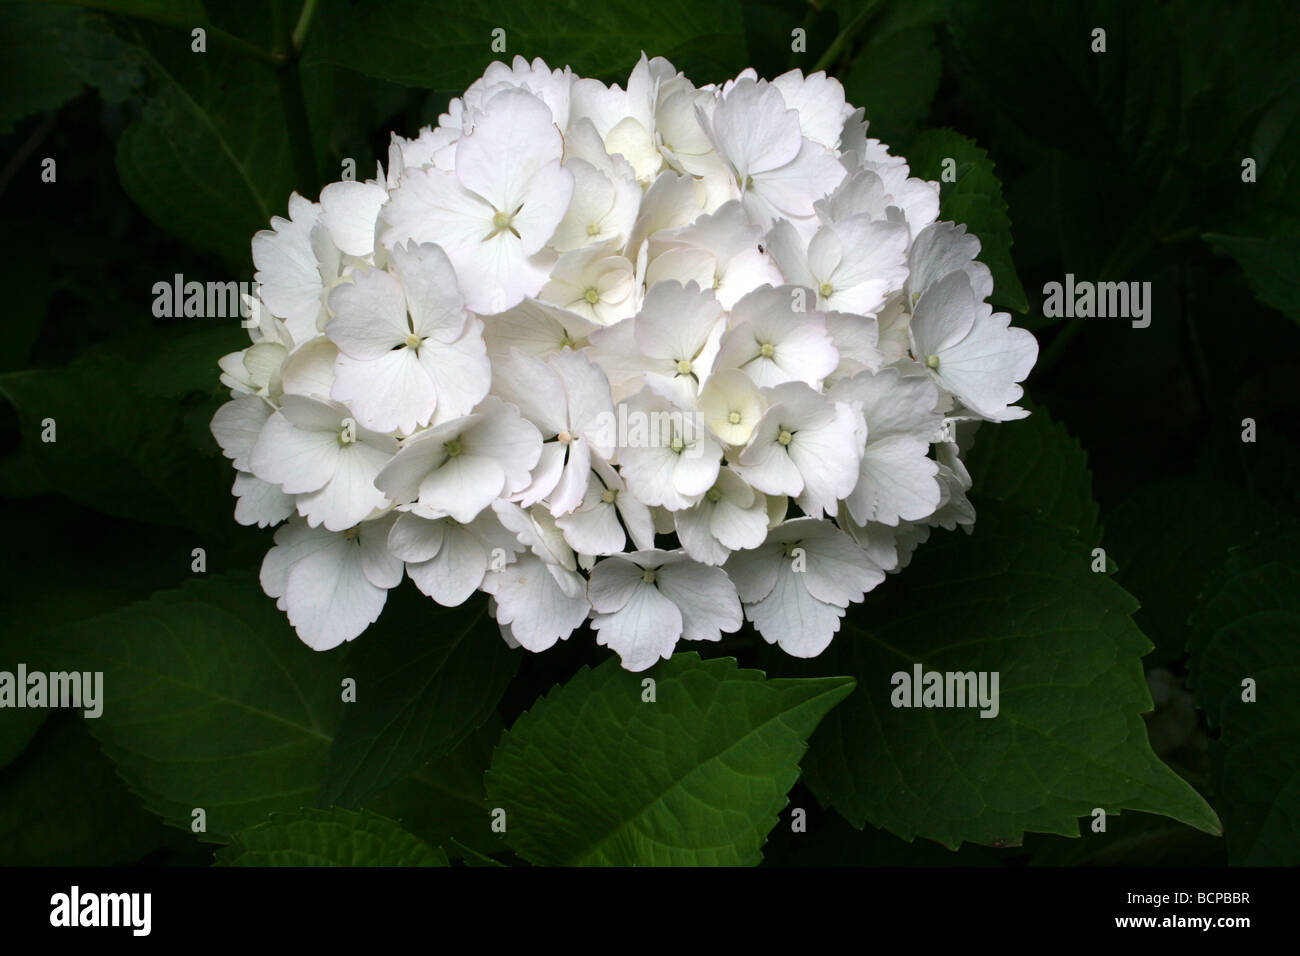 White Hydrangea Flower Taken In Croxteth Hall Walled Garden Stock